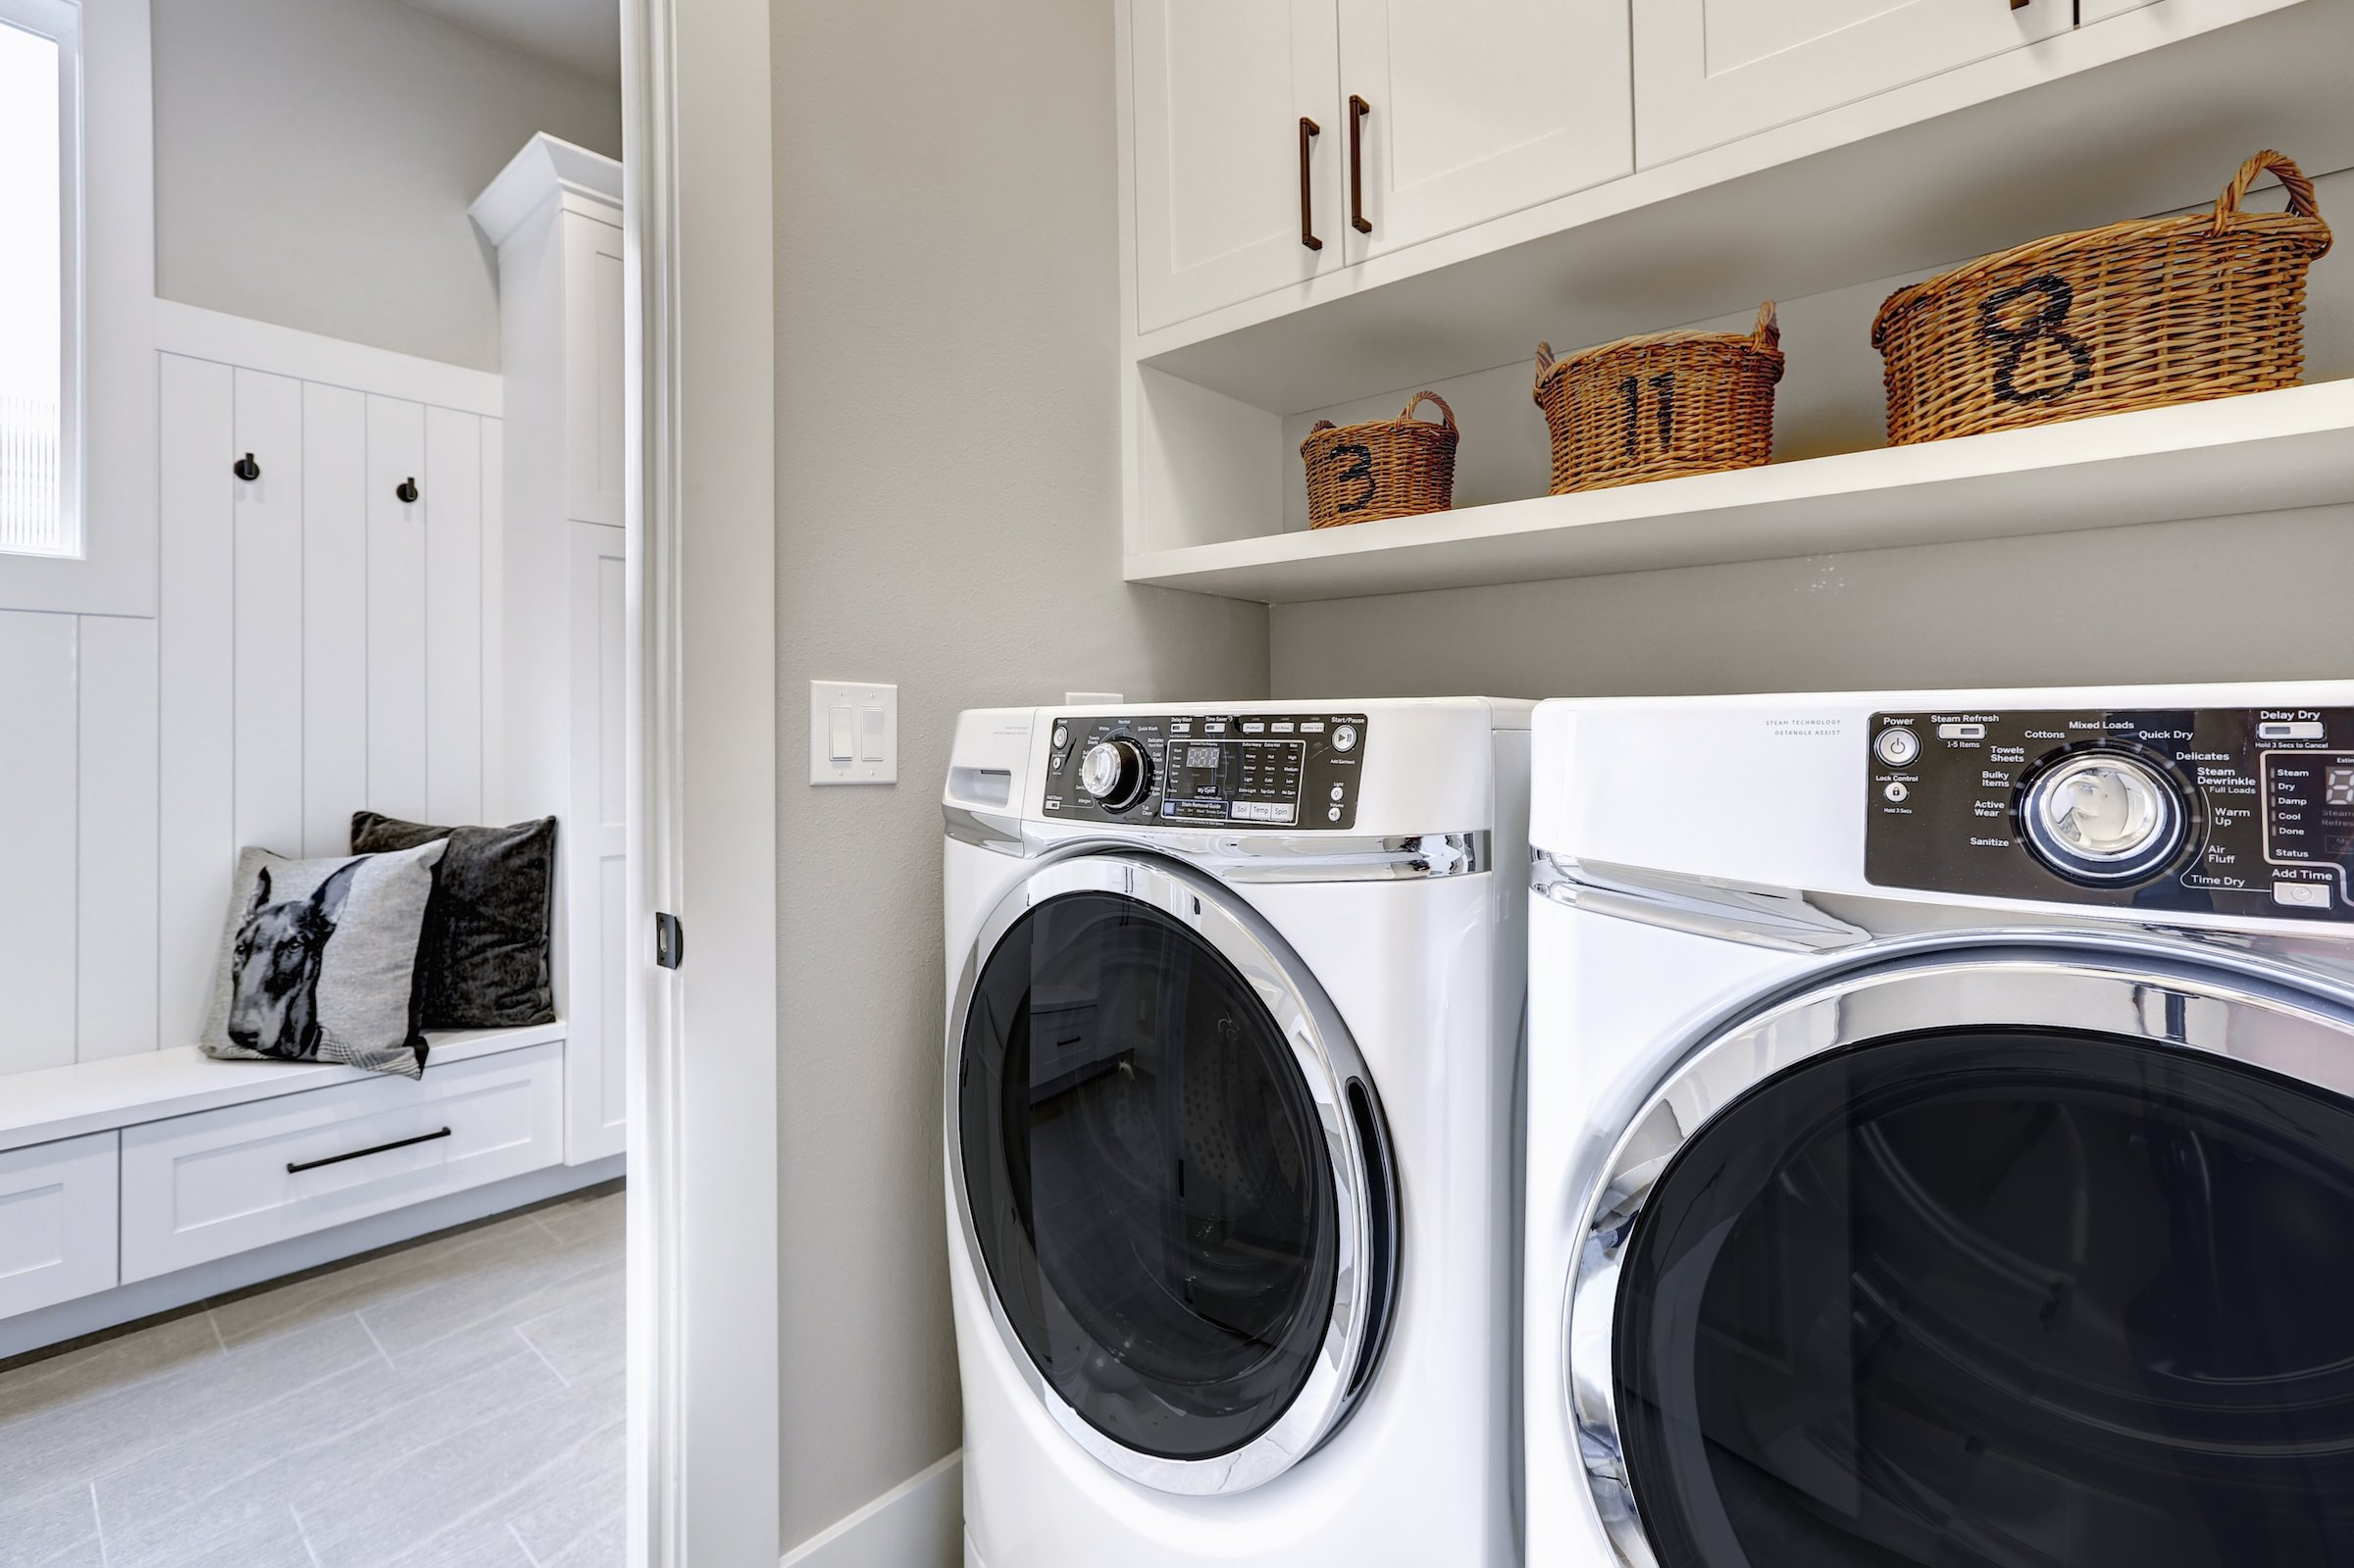 Dryer is making noise that sounds like grinding: how to troubleshoot.